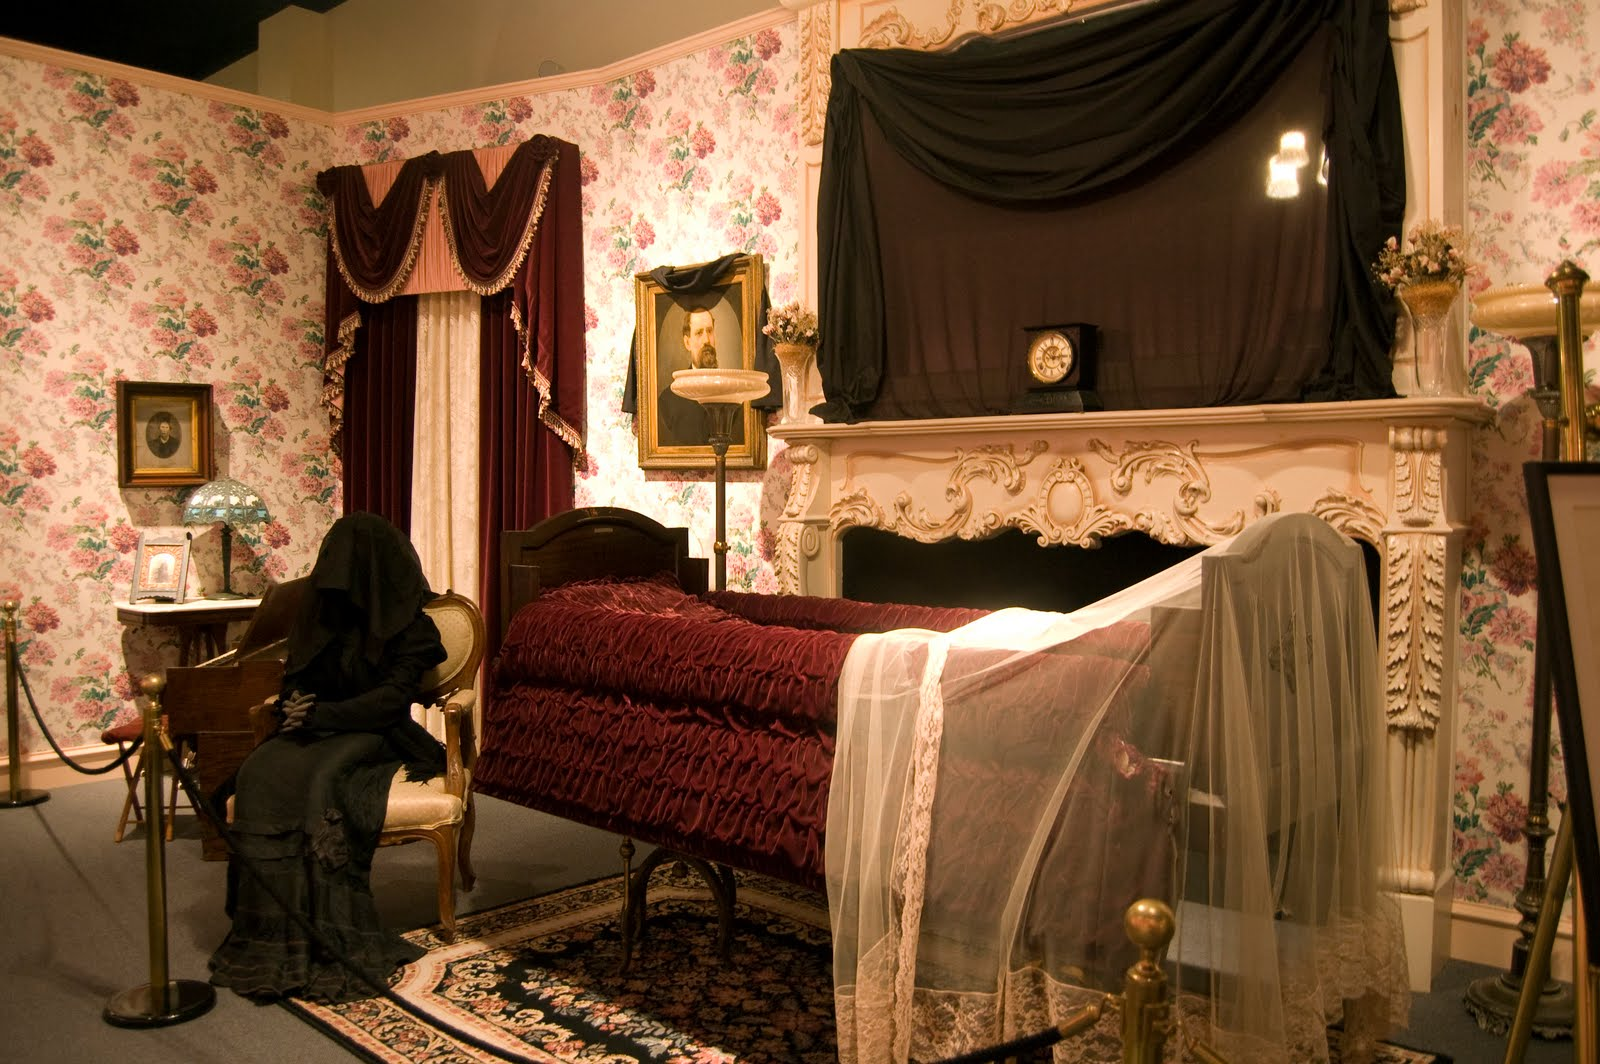 victorian funeral practices 7 victorian traditions we can't believe existed these customs were truly bizarre  in very well in victorian society while proper, participants in this culture also had a preoccupation with death and mourning, which resulted in some truly odd practices  9 wild, whimsical, completely over-the-top victorian houses for sale victorian.